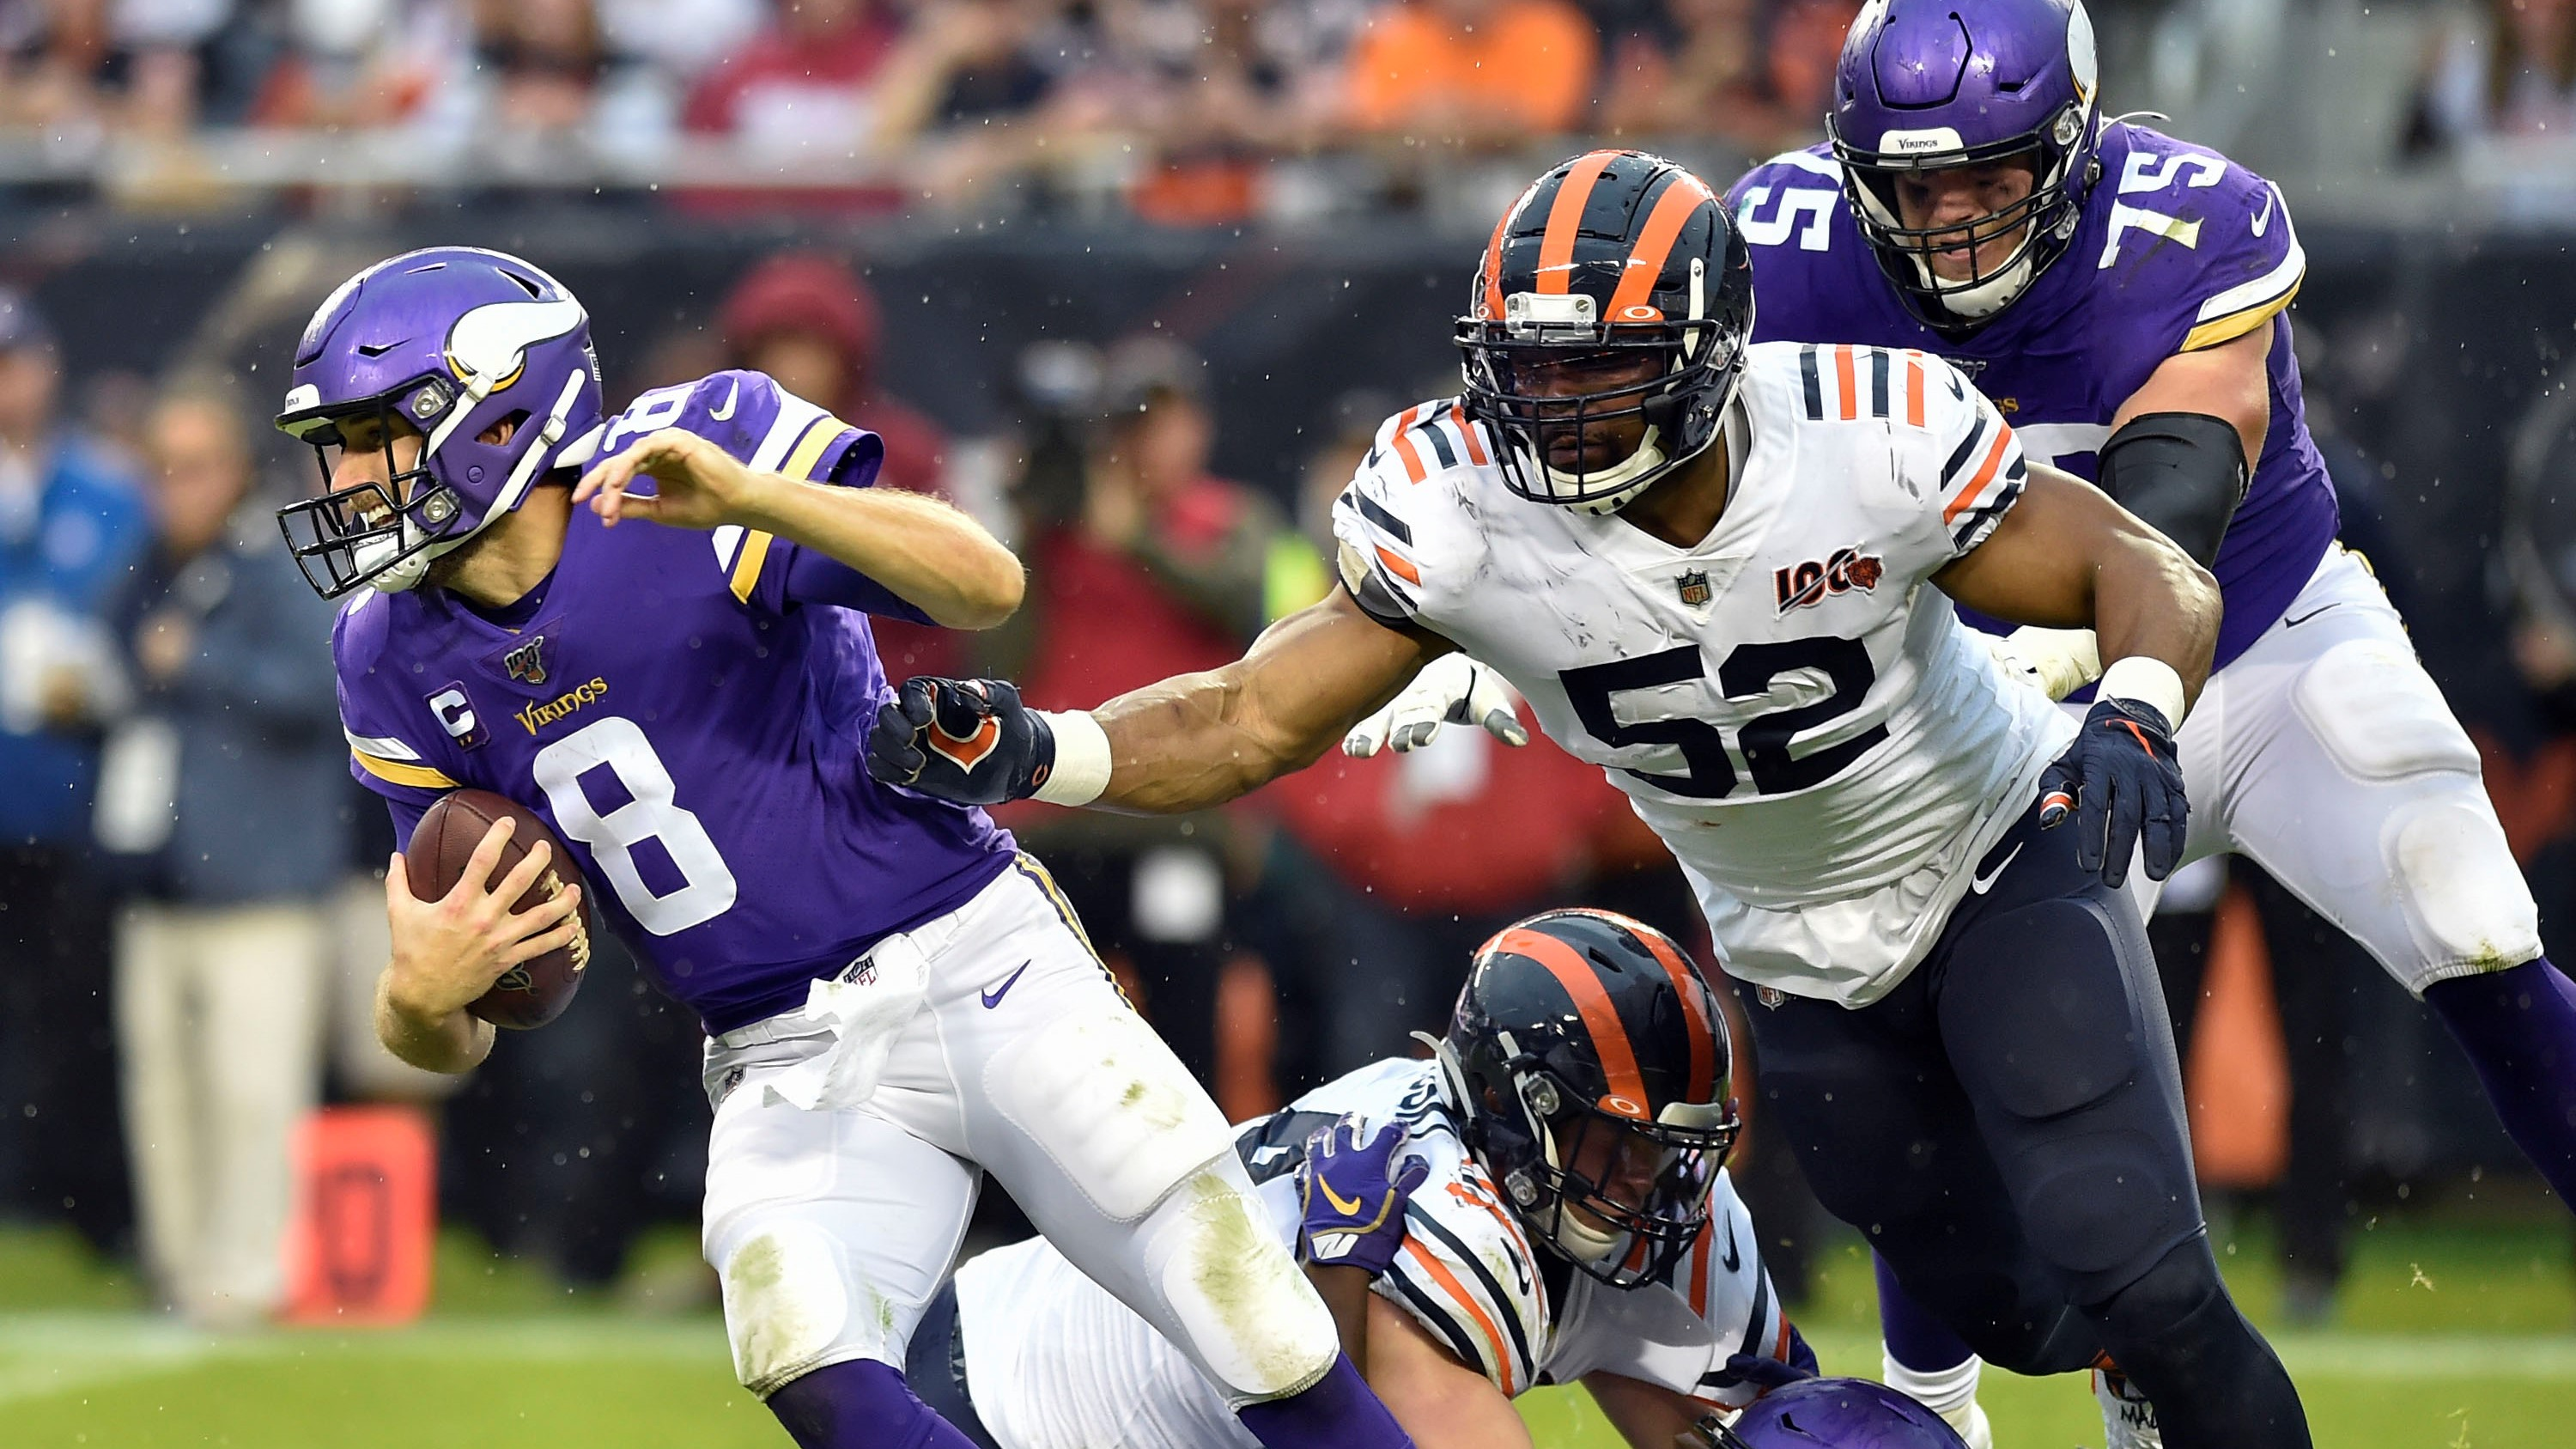 Bears vikings betting odds life on the line sports betting documentary